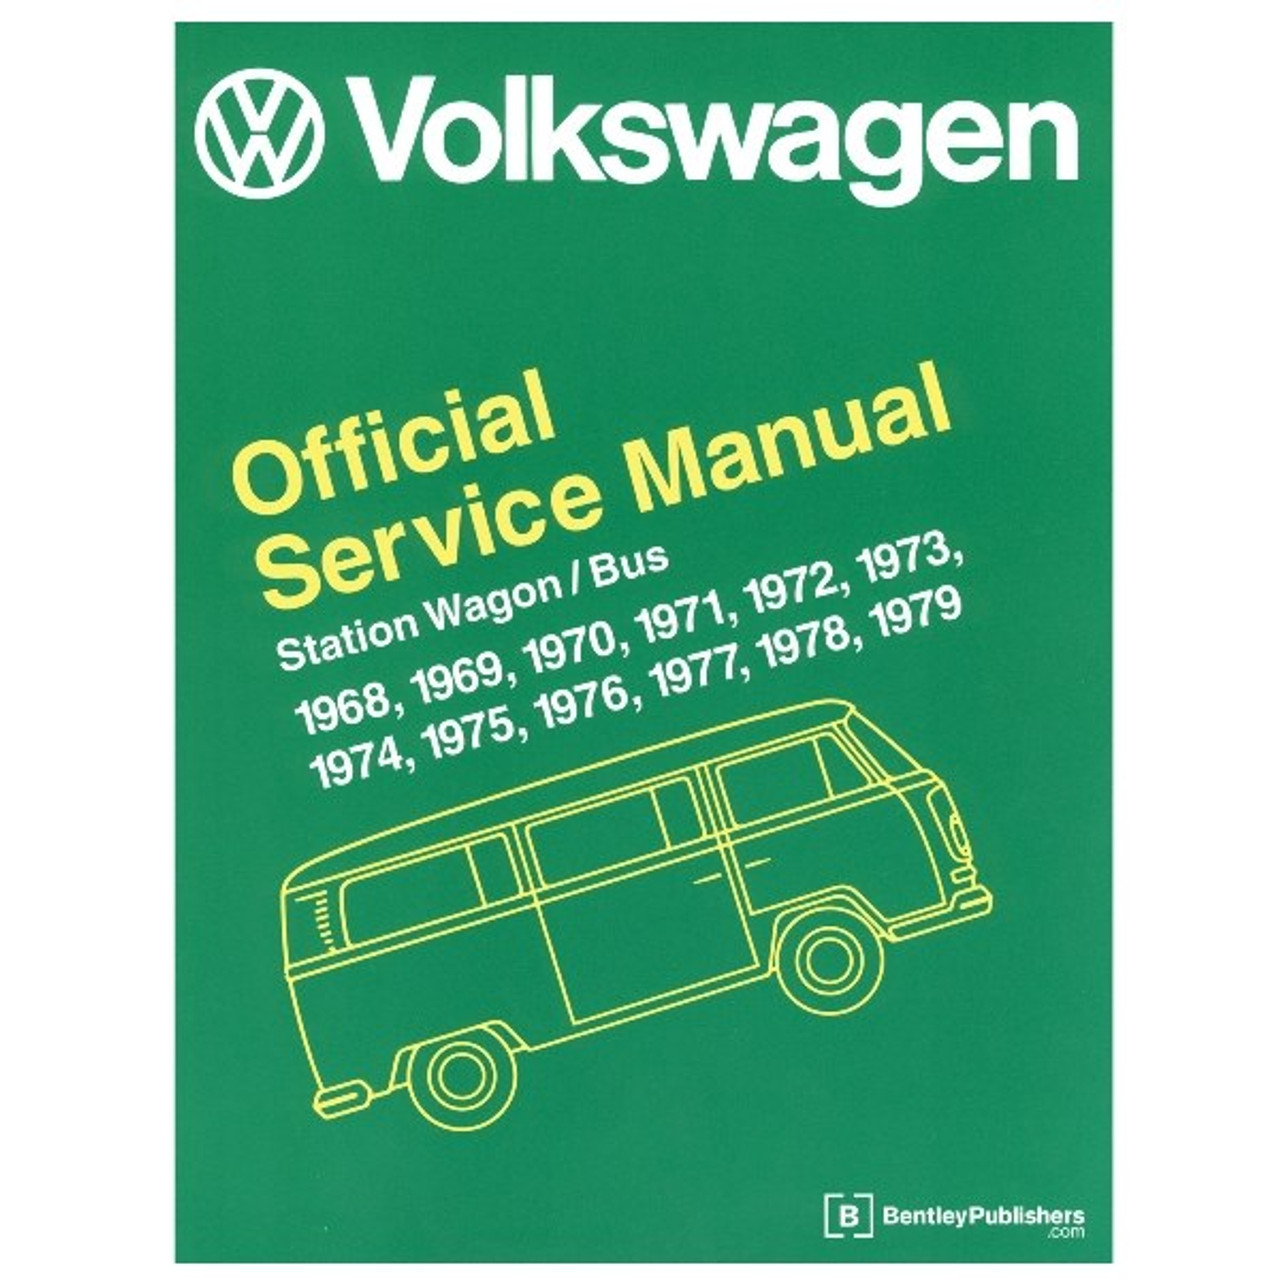 Volkswagen Pat L Wiring Diagram Manual on volkswagen torque specs, volkswagen transaxle diagram, volkswagen oil diagram, volkswagen charging system diagram, volkswagen key diagram, volkswagen fuel diagram, volkswagen ignition diagram, volkswagen chassis, volkswagen fuse chart, volkswagen brakes diagram, volkswagen clutch diagram, volkswagen relay diagram, volkswagen engine diagram, volkswagen air conditioning, volkswagen fuse diagram, volkswagen firing order, volkswagen vacuum diagram, volkswagen r400, volkswagen electrical system,